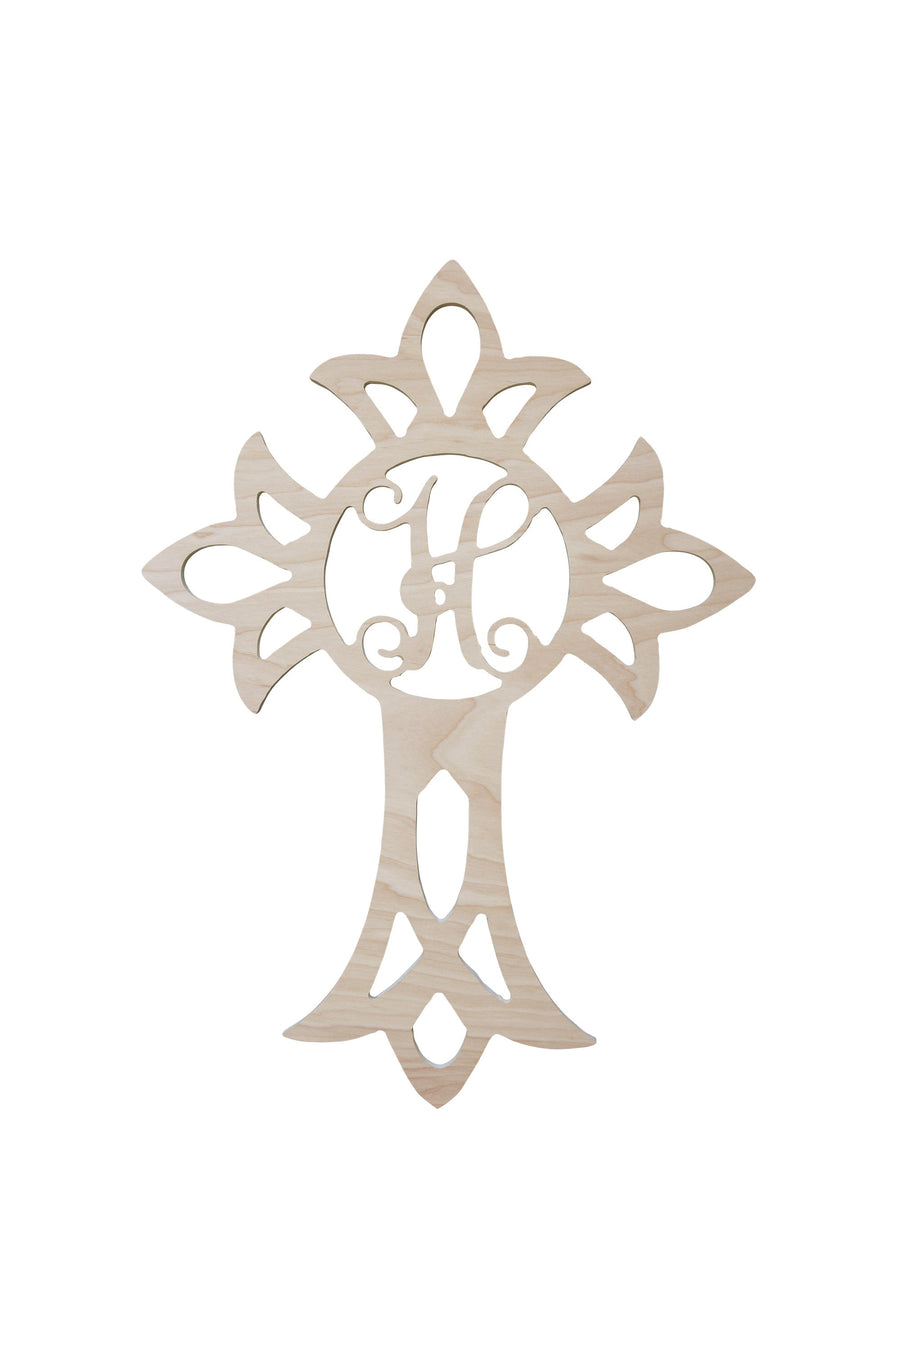 22 Inch Cross Wood Monogram, Home, WB, - Sunny and Southern,